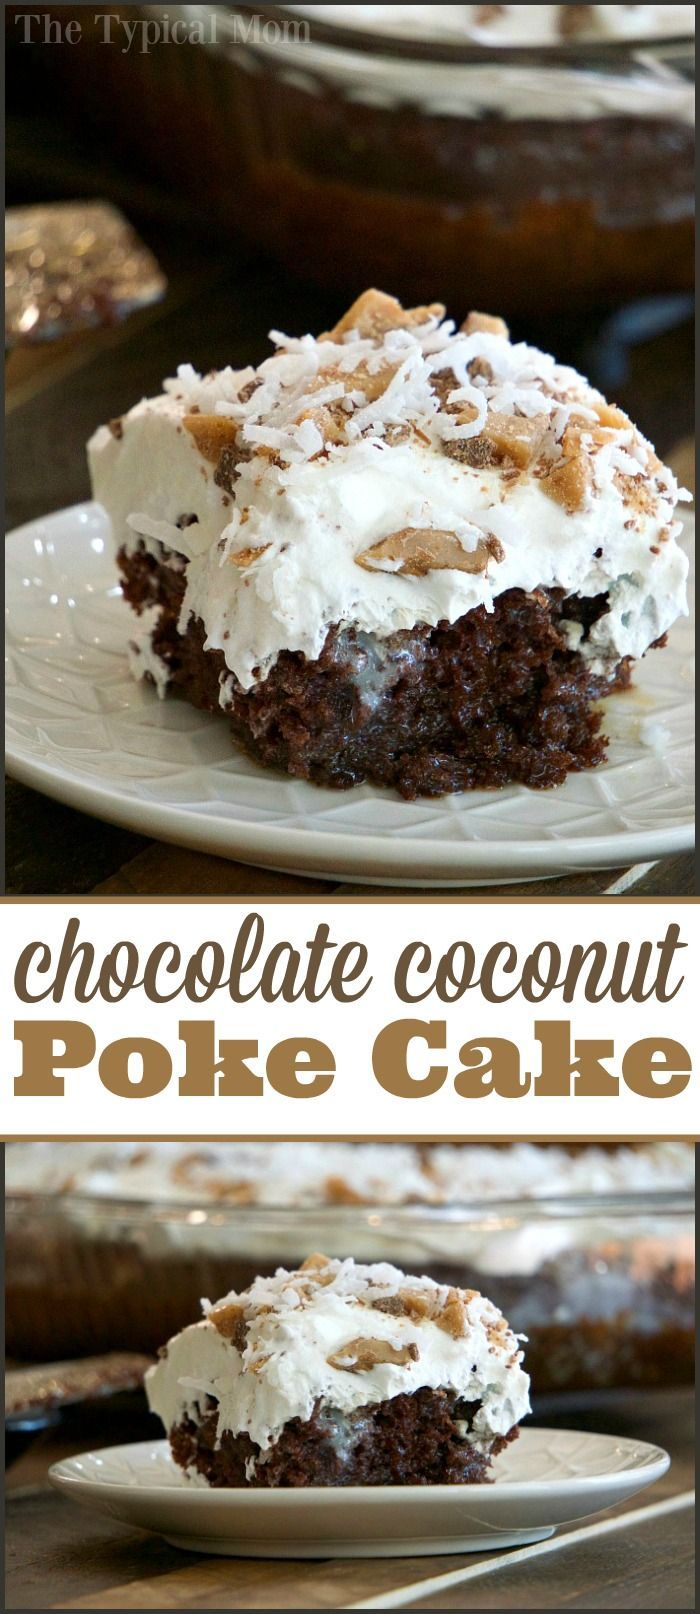 This chocolate coconut cake is amazing! The best chocolate poke cake ever with caramel and coconut on top. Super moist and the best to take to a potluck! via @thetypicalmom